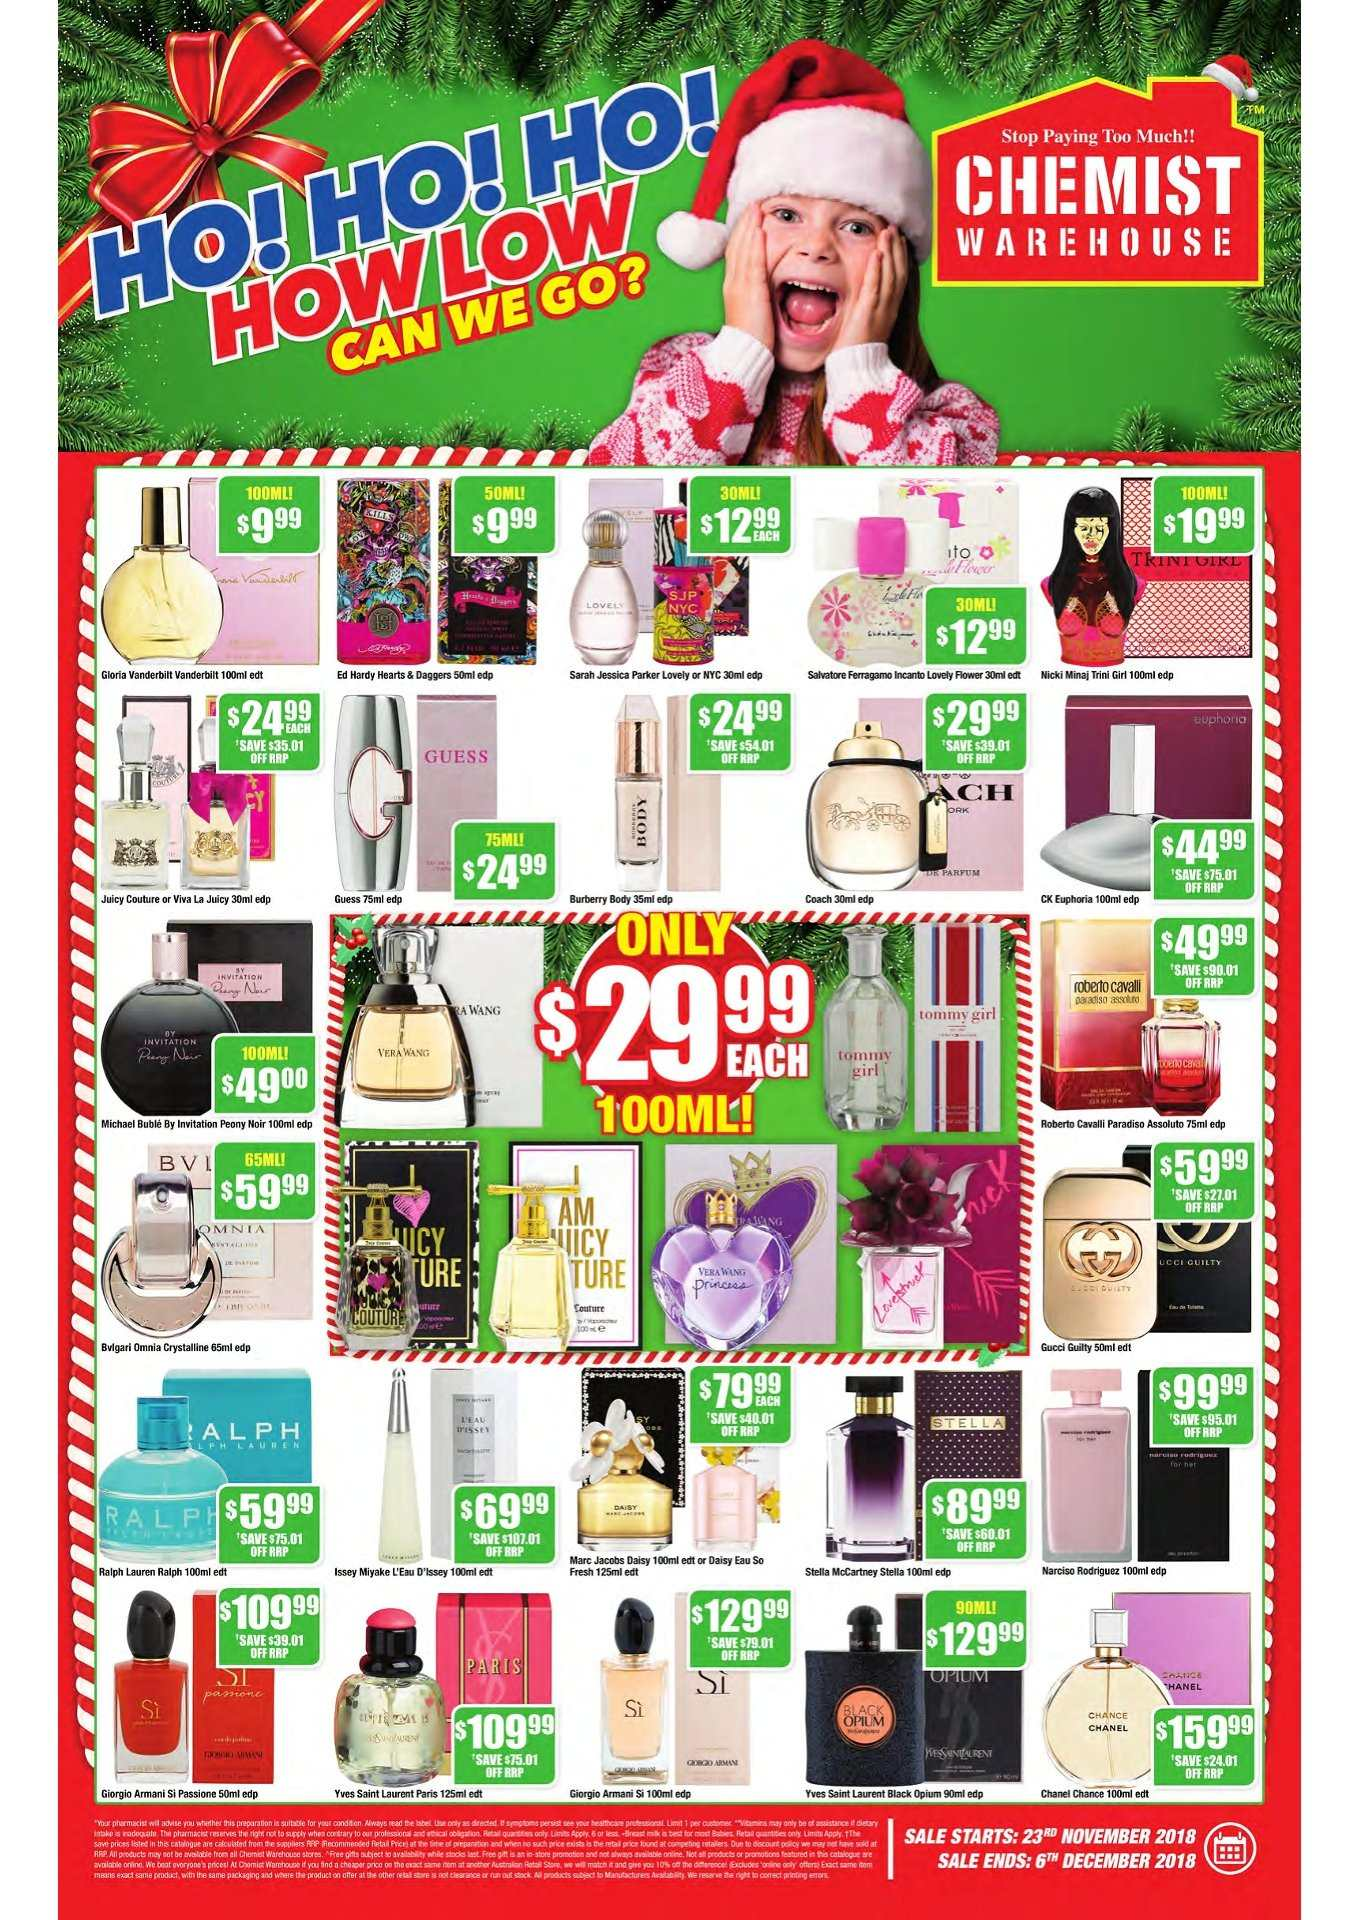 Chemist Warehouse catalogue  - 23.11.2018 - 6.12.2018. Page 1.